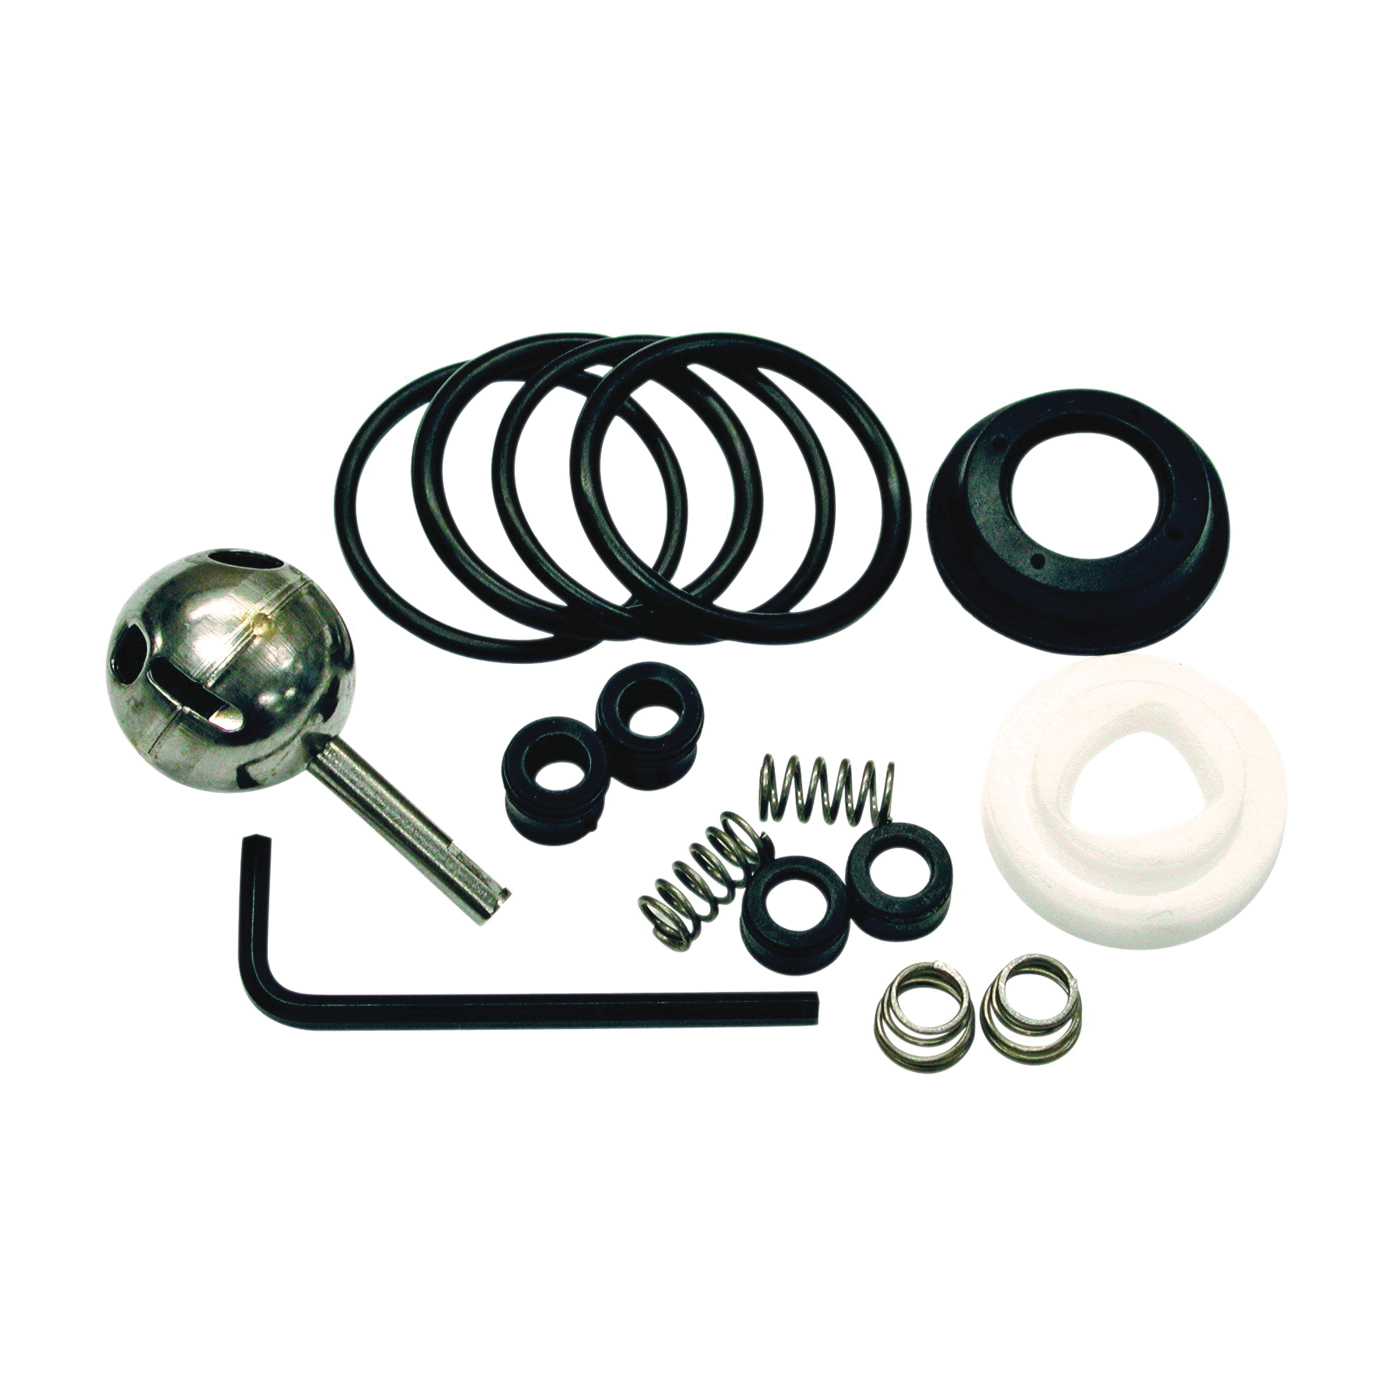 Picture of Danco 86970 Cartridge Repair Kit, Brass/Plastic/Rubber/Steel, For: Delta Single-Handle Faucets